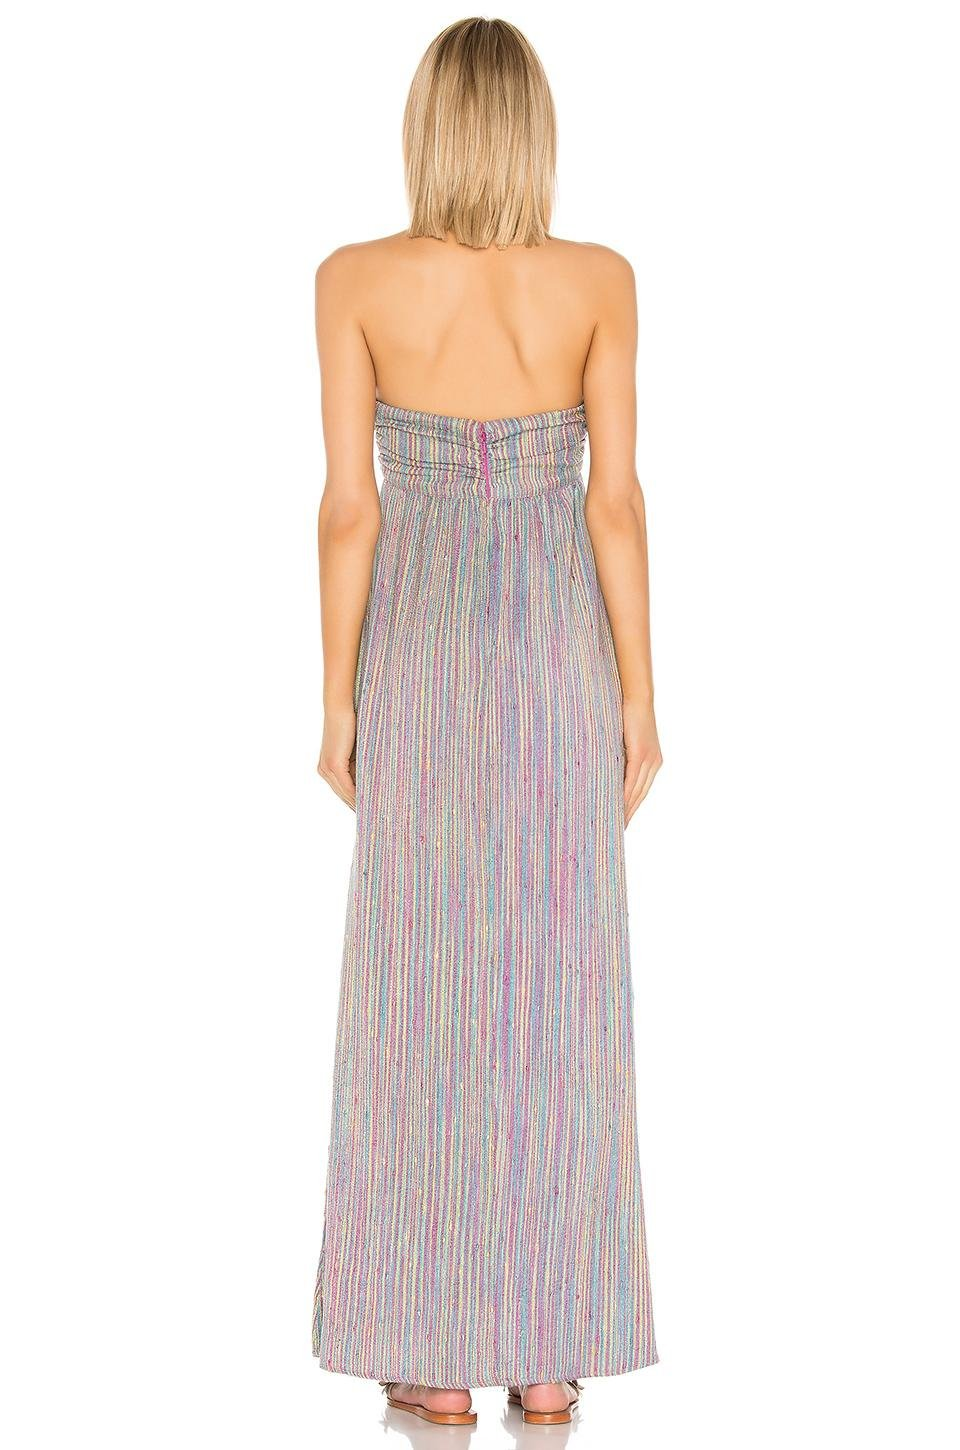 6817af4a81e8 MAJORELLE - Multicolor Vienna Maxi Dress - Lyst. View fullscreen